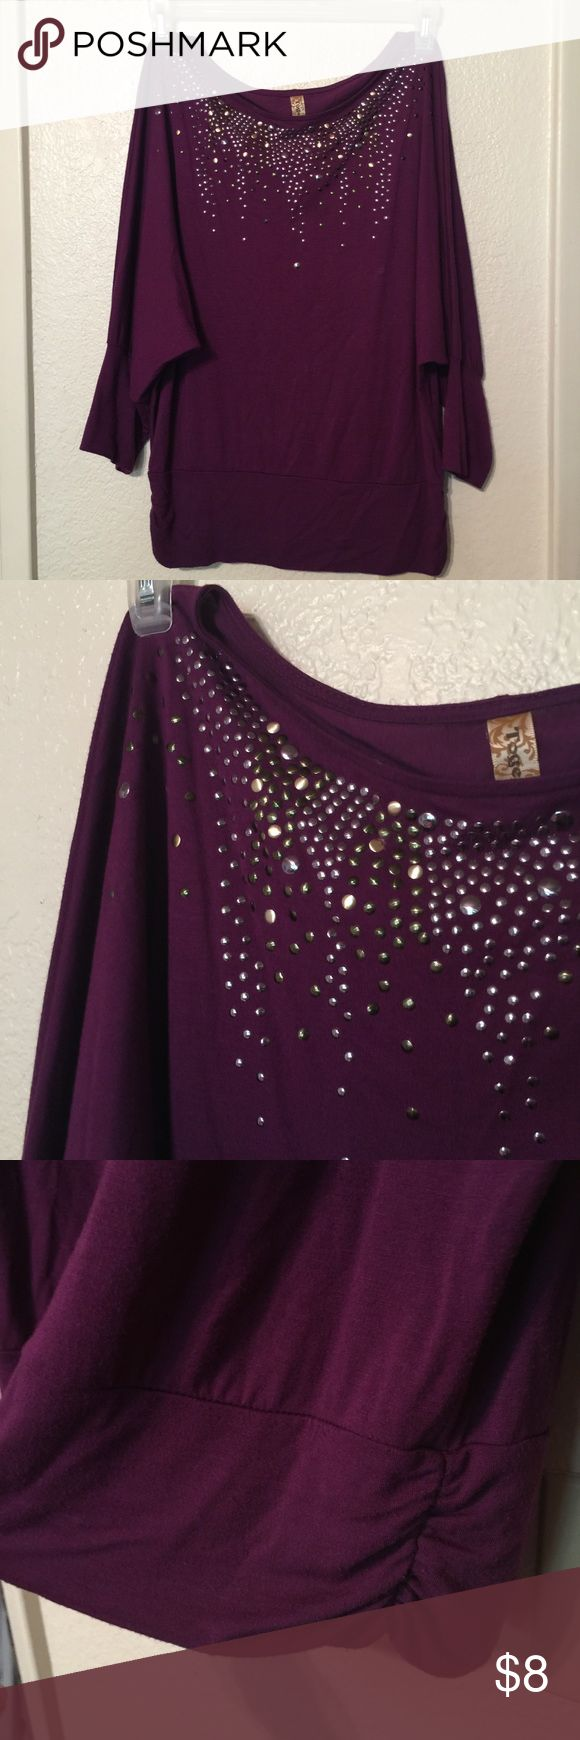 Purple Batwing Top w/ Studs ✨ Silver and gold studs adorn this very flattering top. Scoop neck, batwing arms, and a banded waistband. Perfect for the office or with jeans and boots! Together Tops